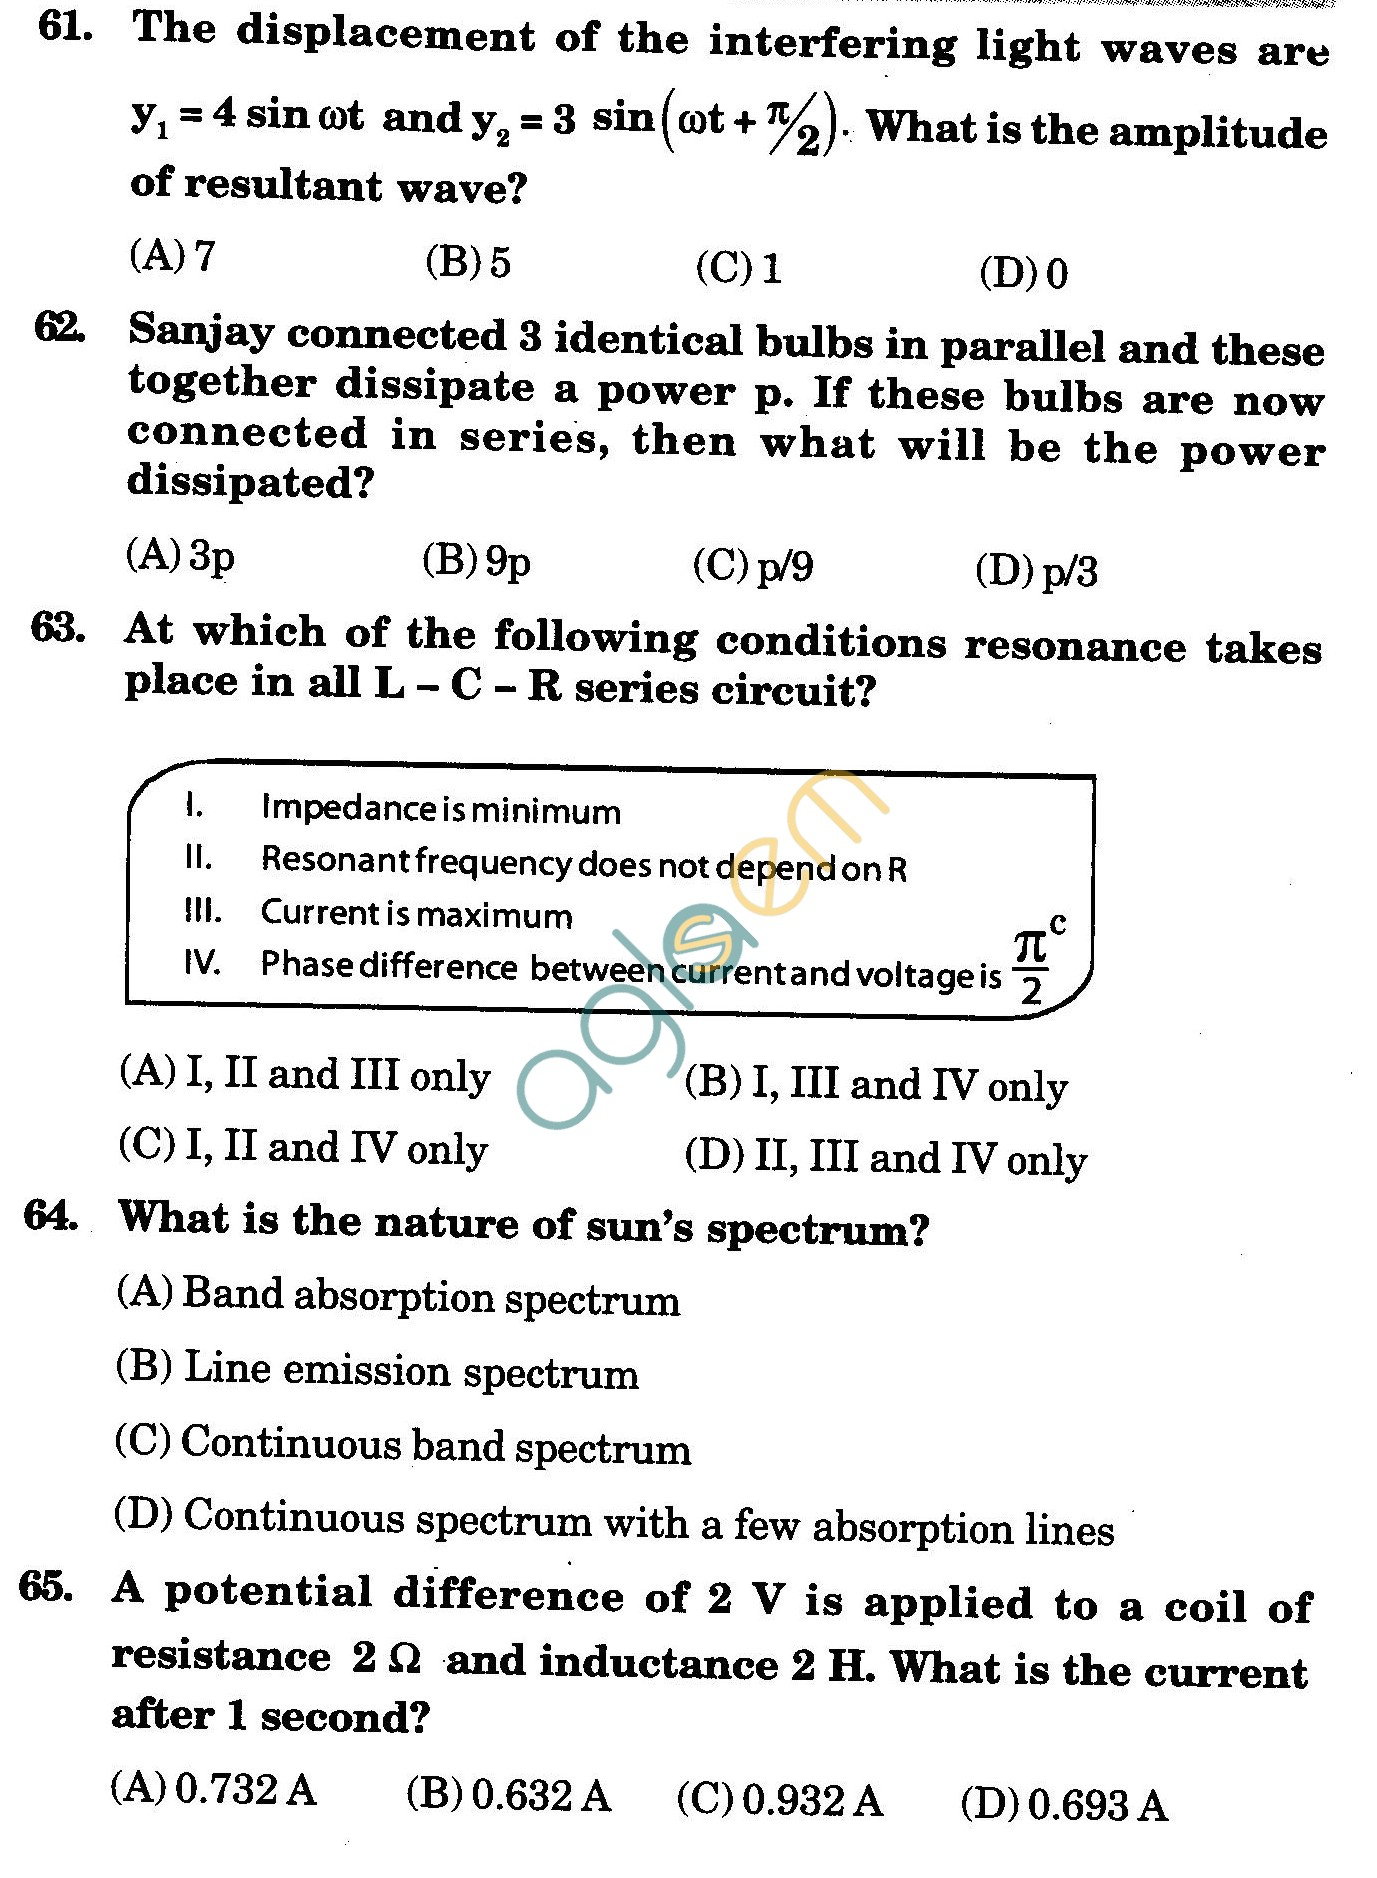 NSTSE 2010 Class XII PCM Question Paper with Answers - Physics